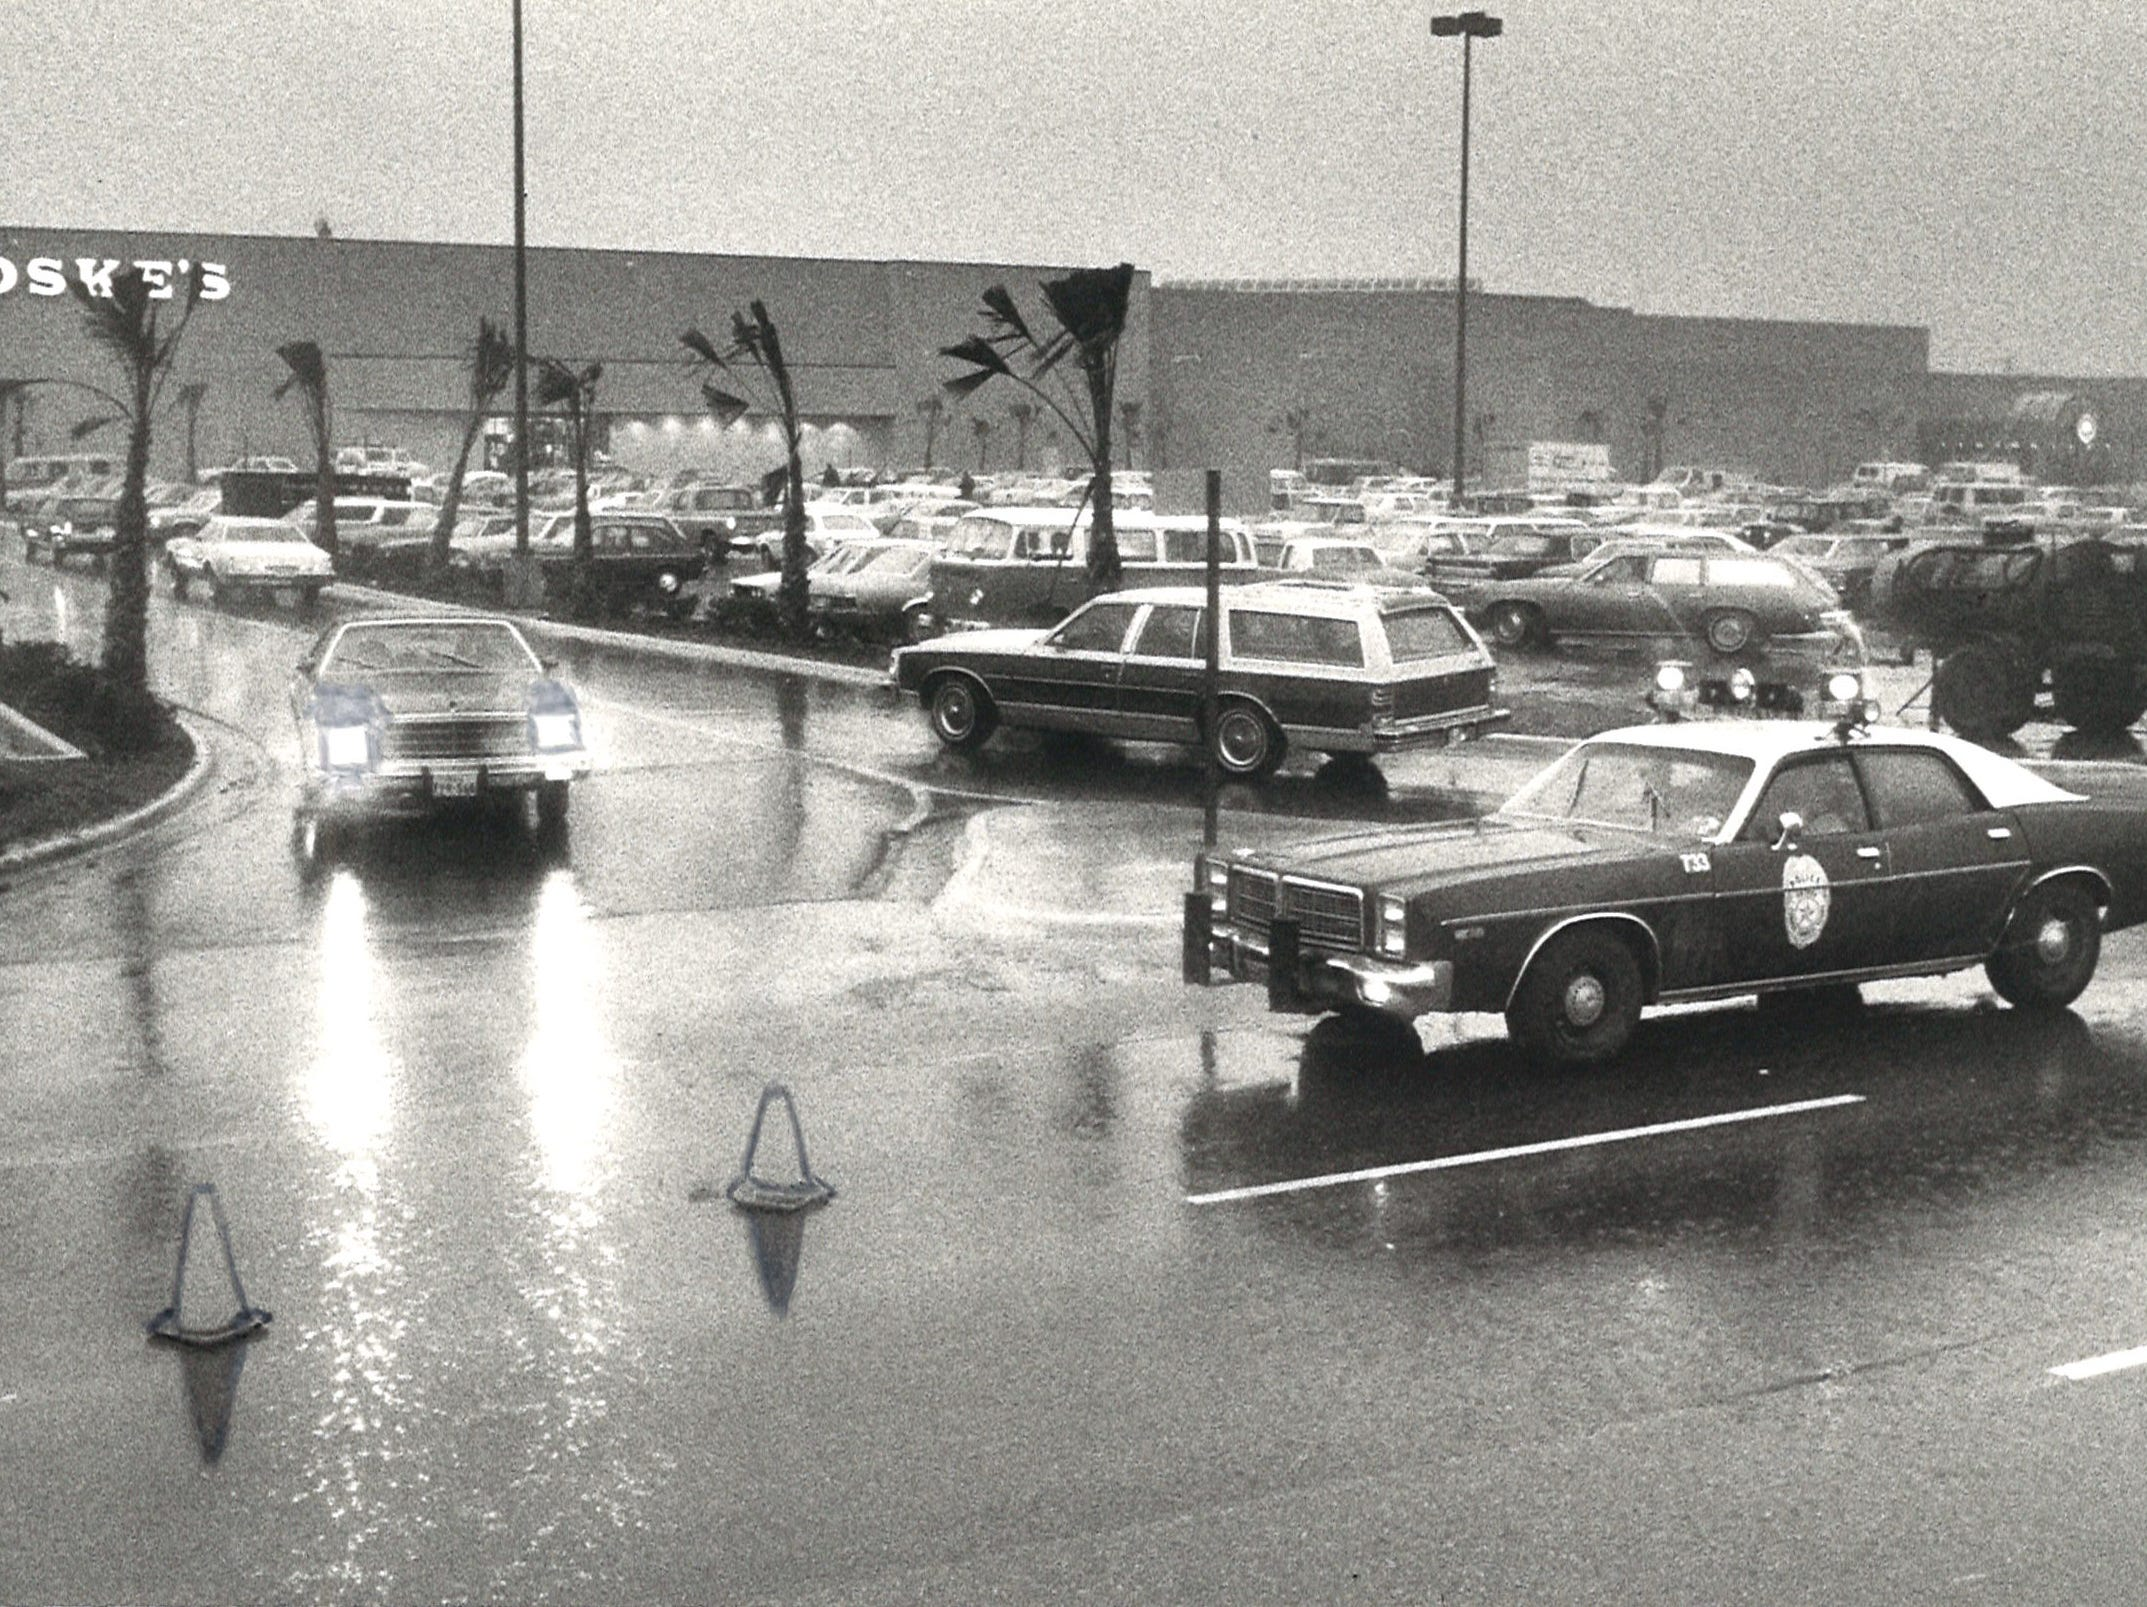 Police had to control the flow of traffic into the new Sunrise Mall on its rainy opening day on Feb. 4, 1981.